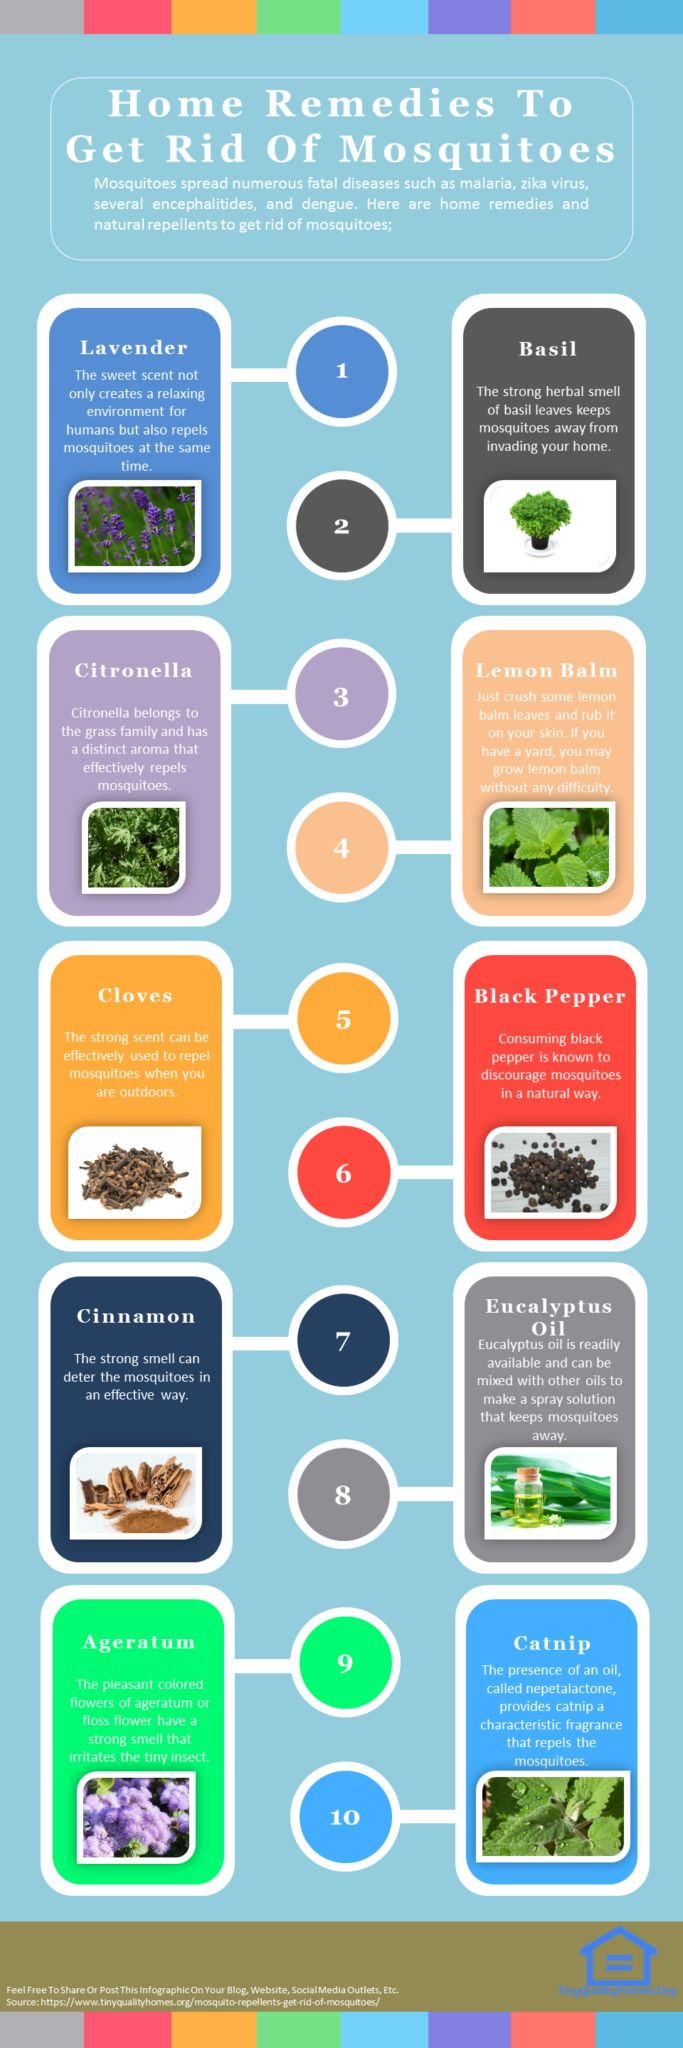 35 Natural Mosquito Repellents To Get Rid Of Mosquitoes: This Guide Shares Insights On The Following; How To Get Rid Of Mosquitoes Outdoors, Indoors, Backyard Or During Camping, How To Get Rid Of Mosquitoes Inside The House, Home Remedies To Keep Mosquitoes From Biting, How To Get Rid Of Mosquitoes Bites, How To Keep Mosquitoes Away At Night, Mosquitoes In House At Night, Doterra Mosquito Spray For Skins Dish Soap Mosquito Trap, DIY Homemade Mosquito Repellent With Essential Oils, Etc.